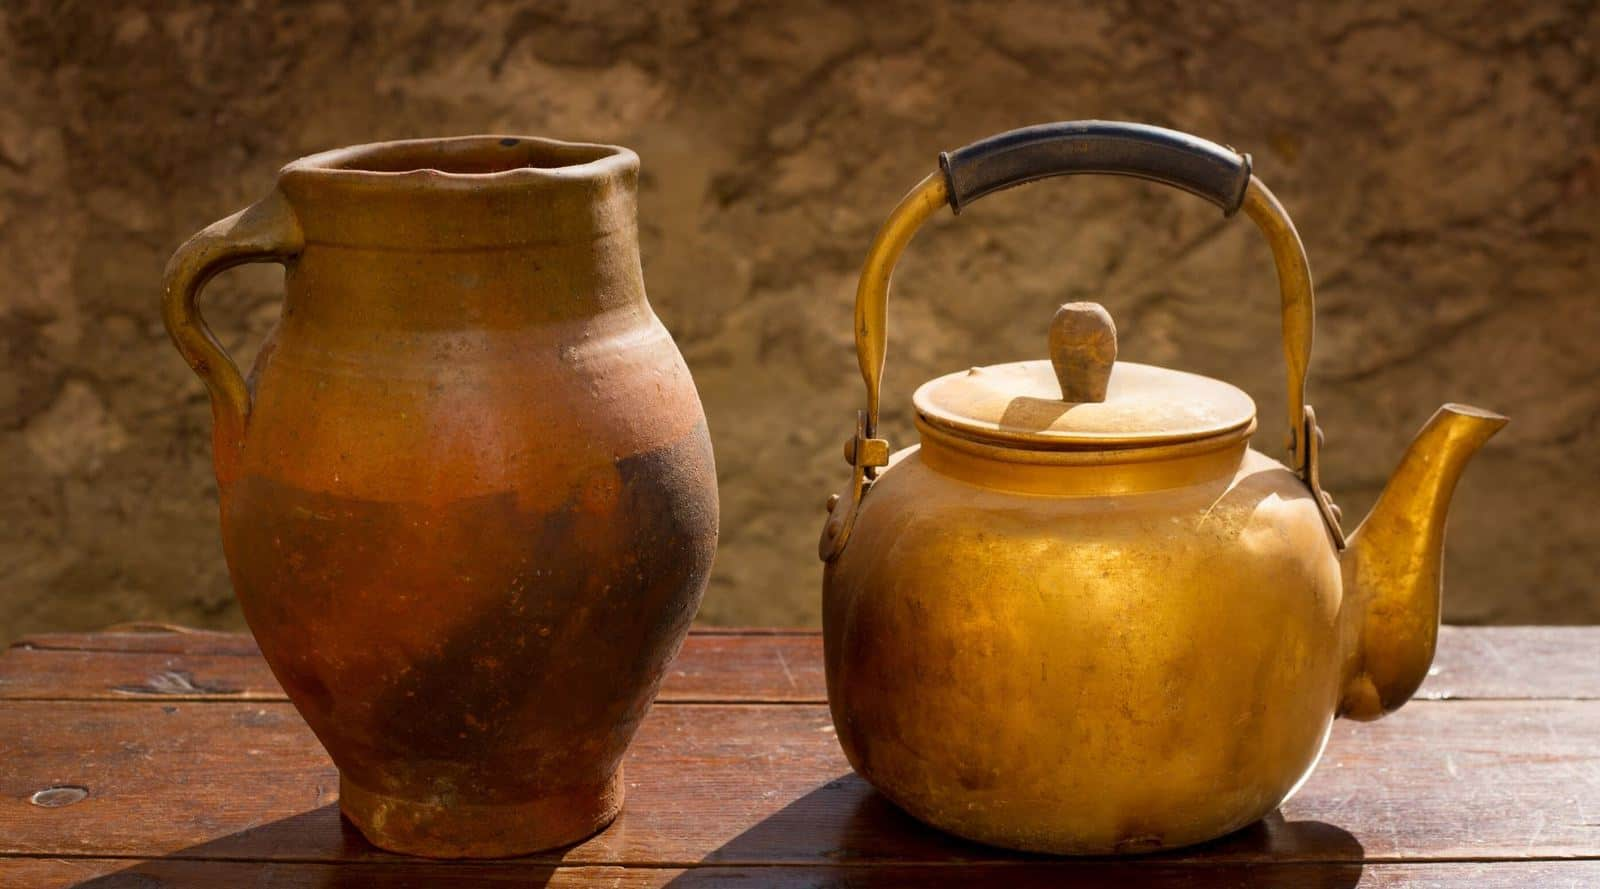 how to date antique teapots? step-by-step procedure